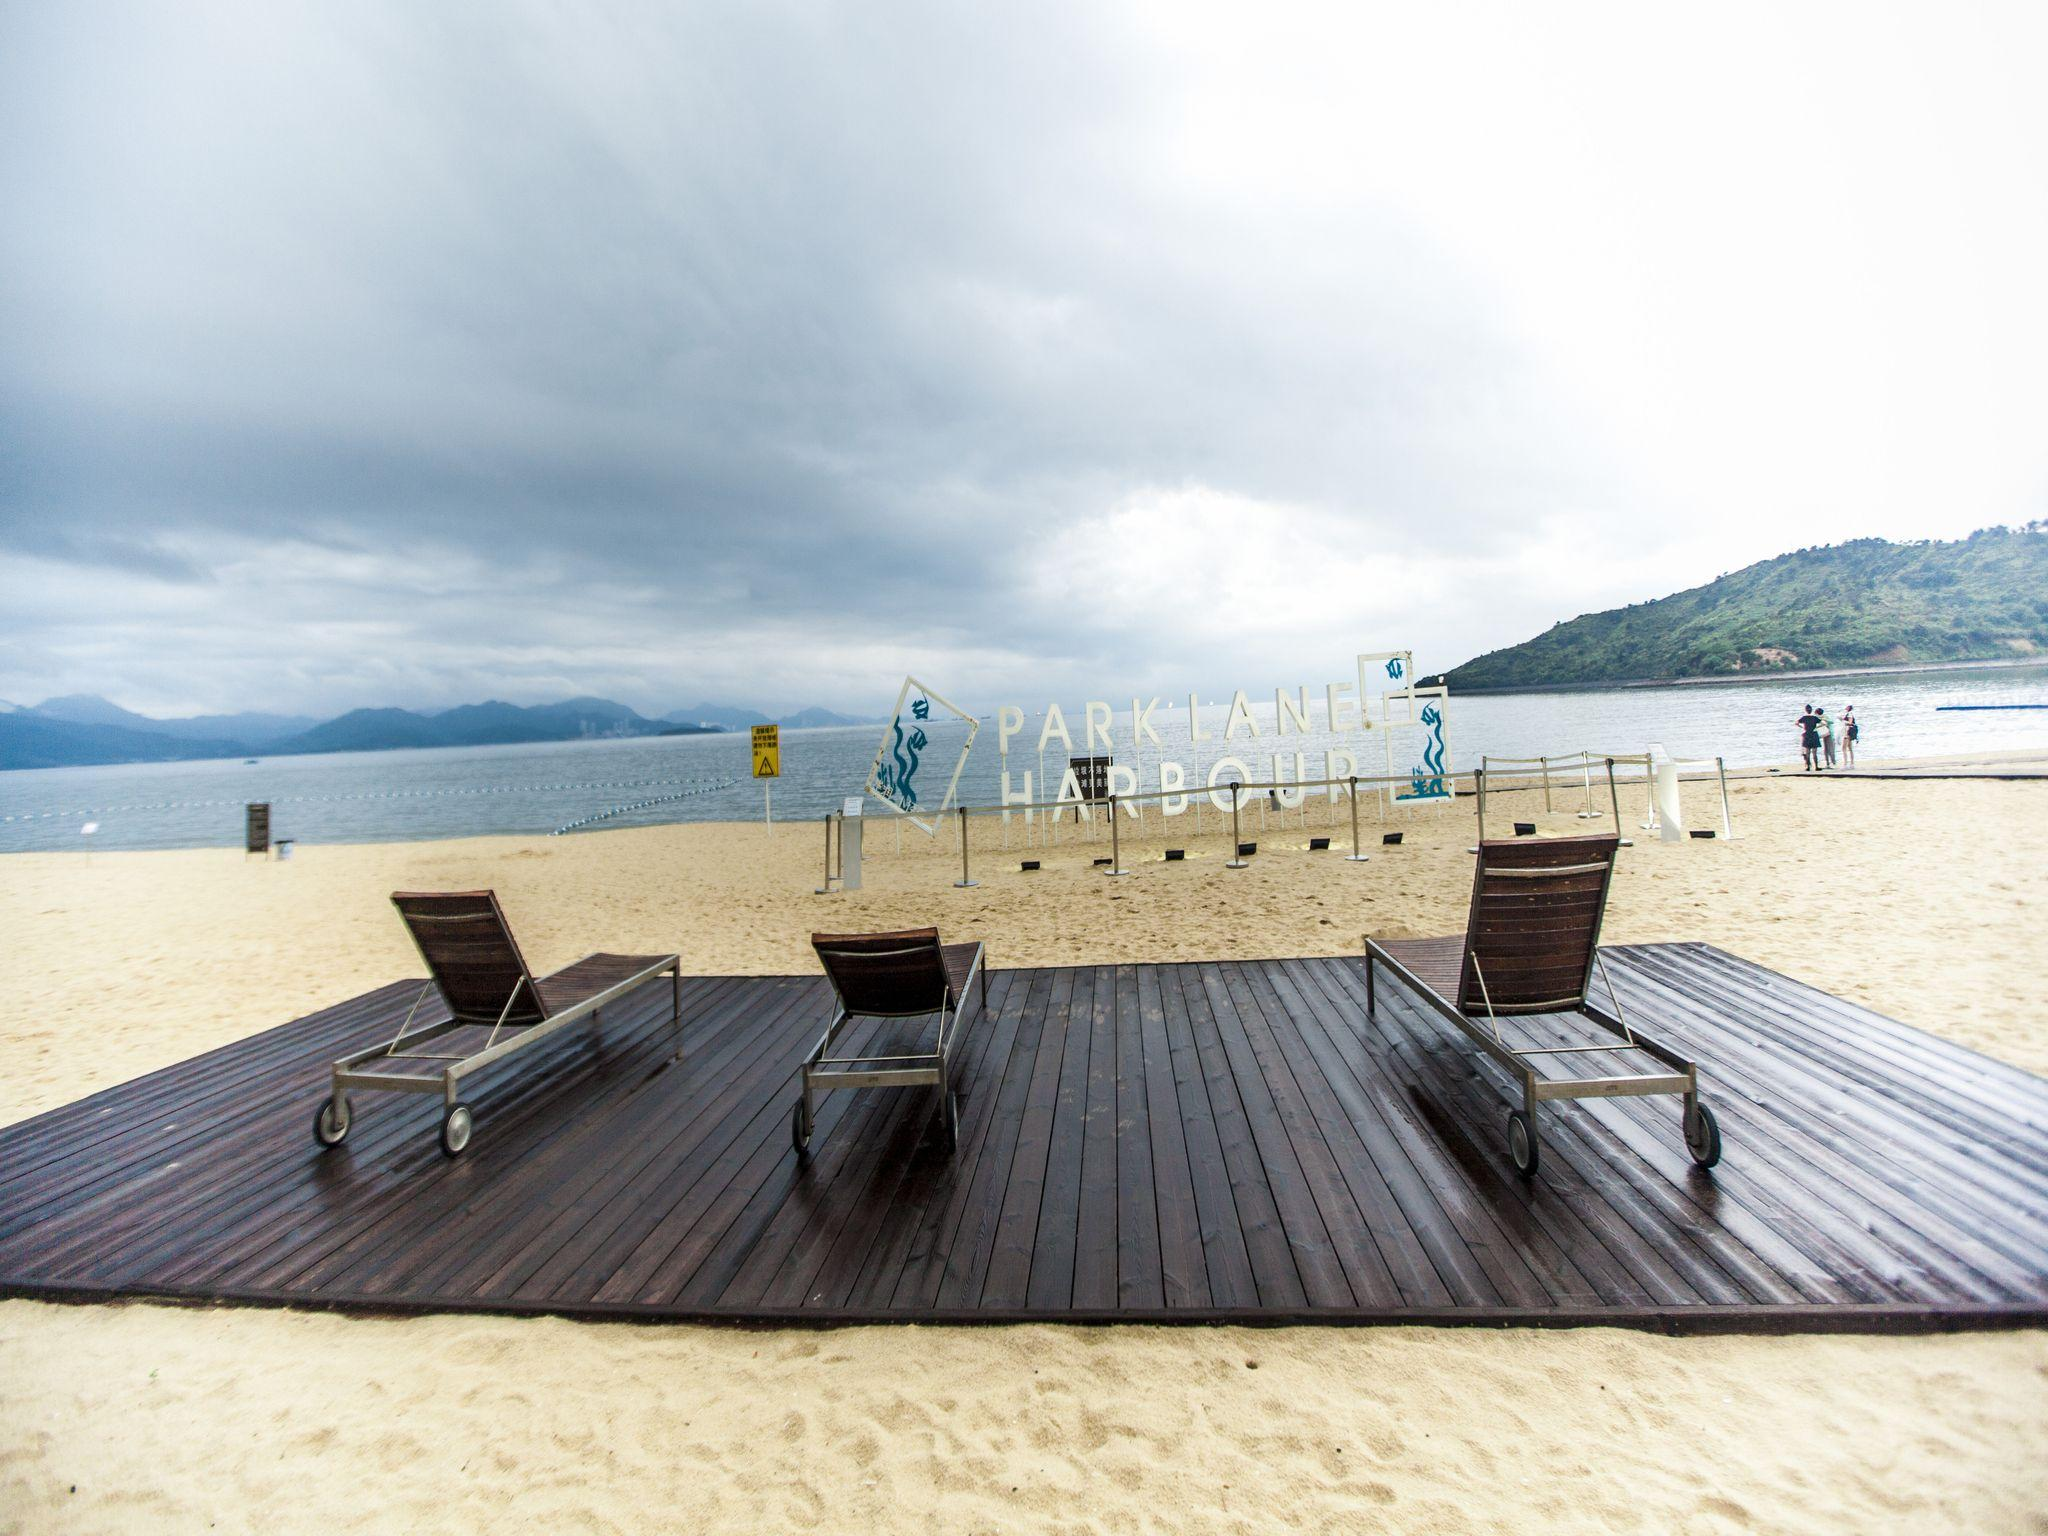 Hua Yang Nian Seaview Hostel Huizhou China